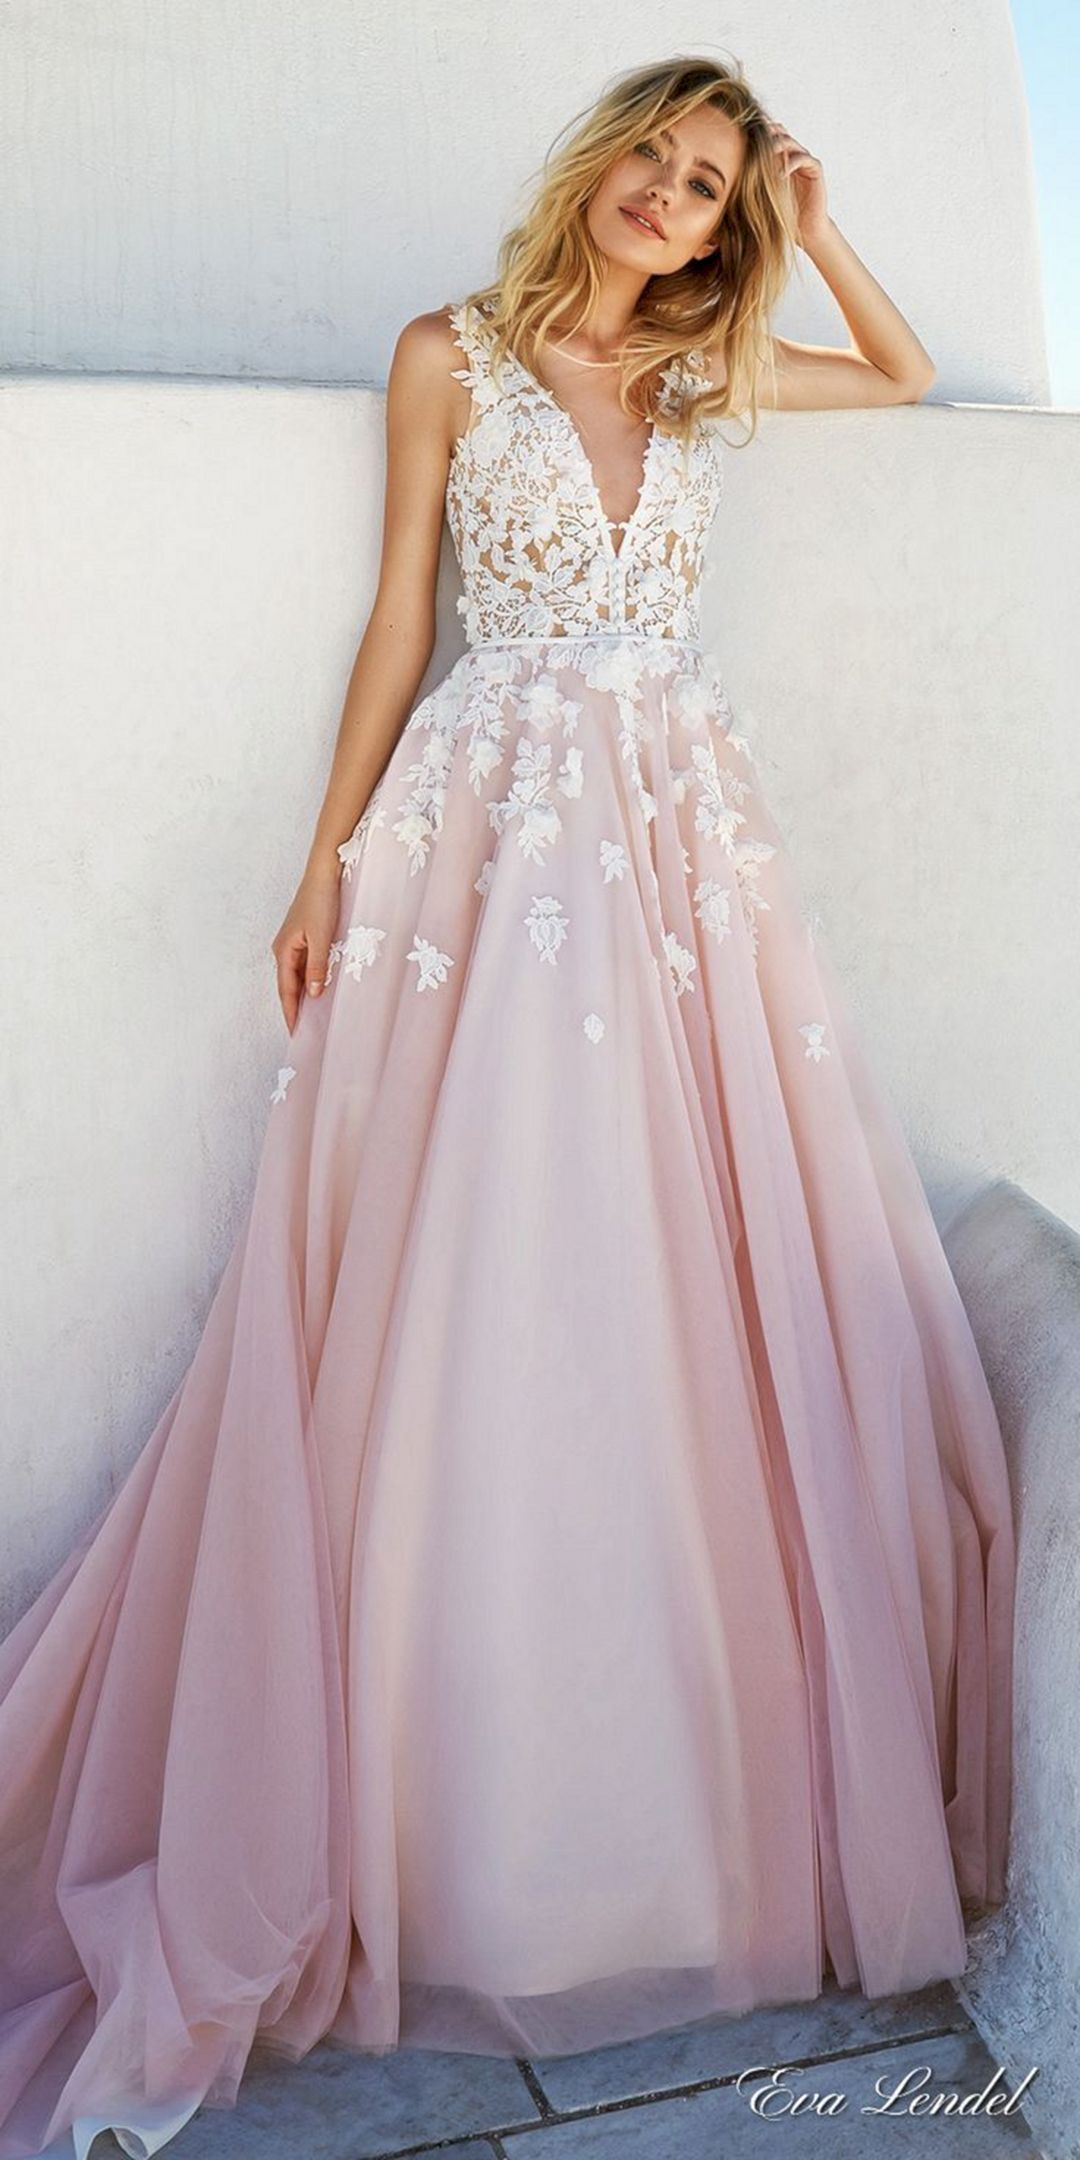 Lovely pink wedding gown color ideas for beautiful bride best